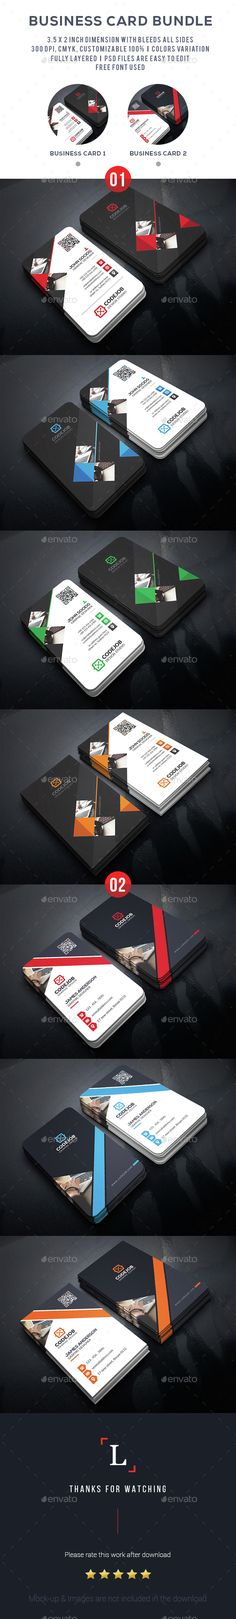 Soft Business Card Template PSD Bundle. Download here: http://graphicriver.net/item/soft-business-card-bundle/15210992?ref=ksioks